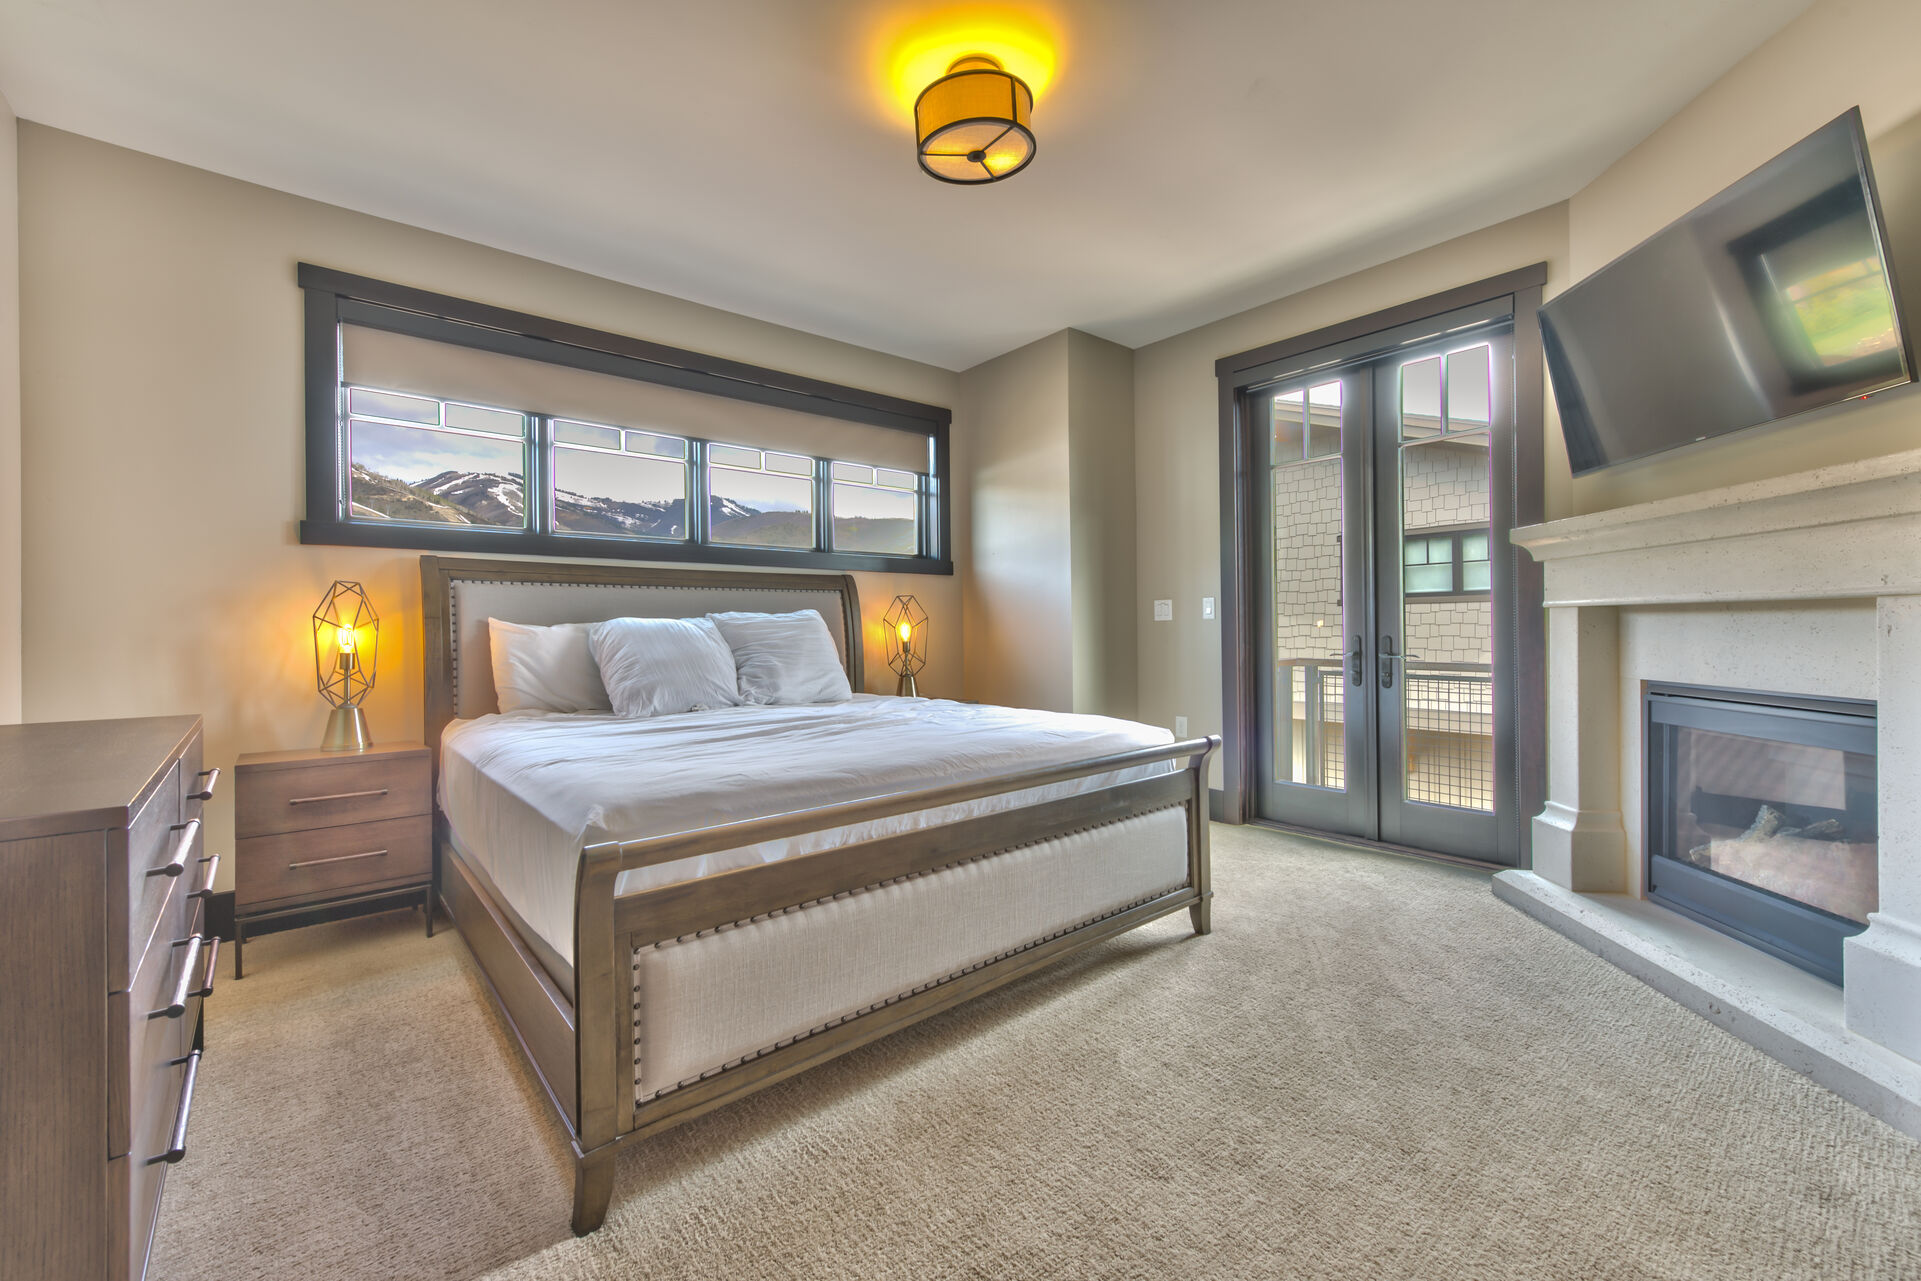 Master Bedroom with King Bed, Private Master Bathroom, 50 inch HD 4K Smart TV/Direct TV, Gas Fireplace, and Private Deck